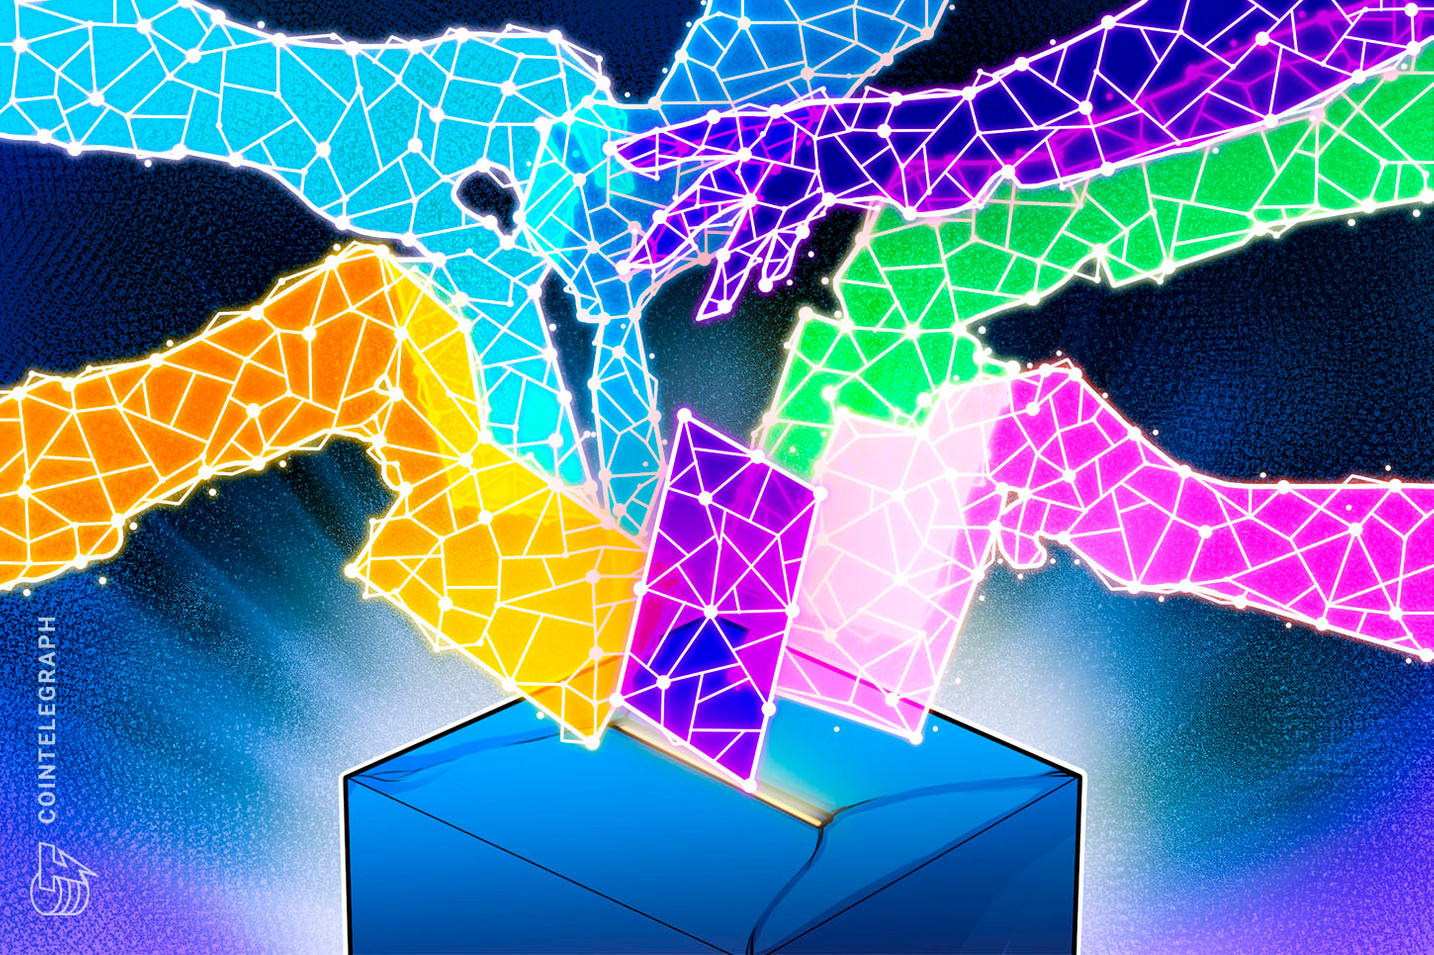 Russia Pilots Federal Voting on Waves Blockchain